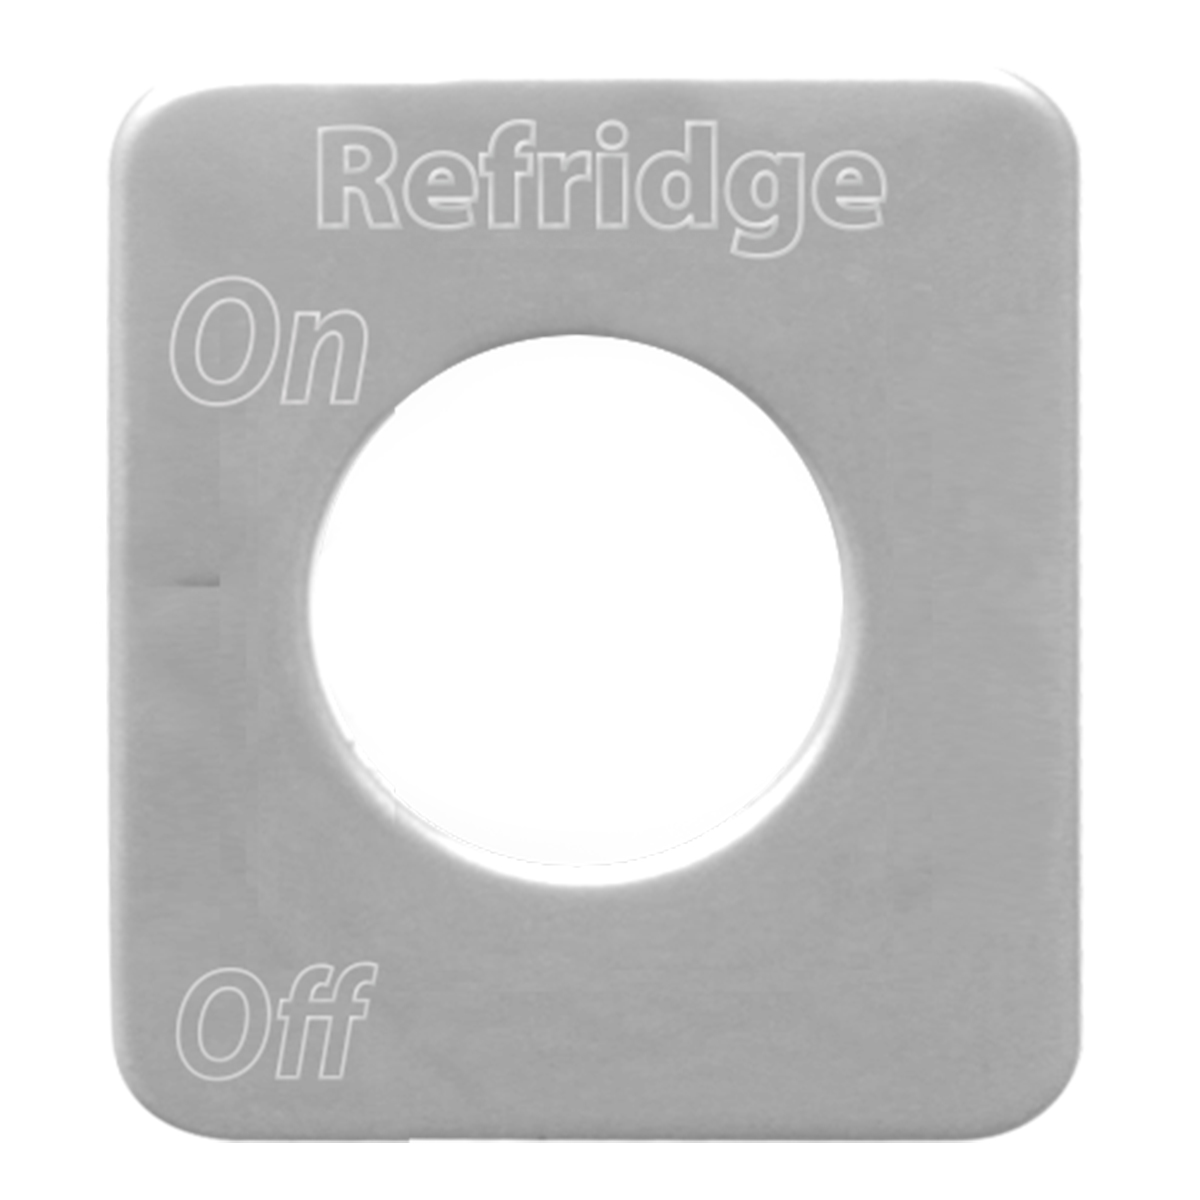 68591 Stainless Steel Refridge Switch Plate for KW